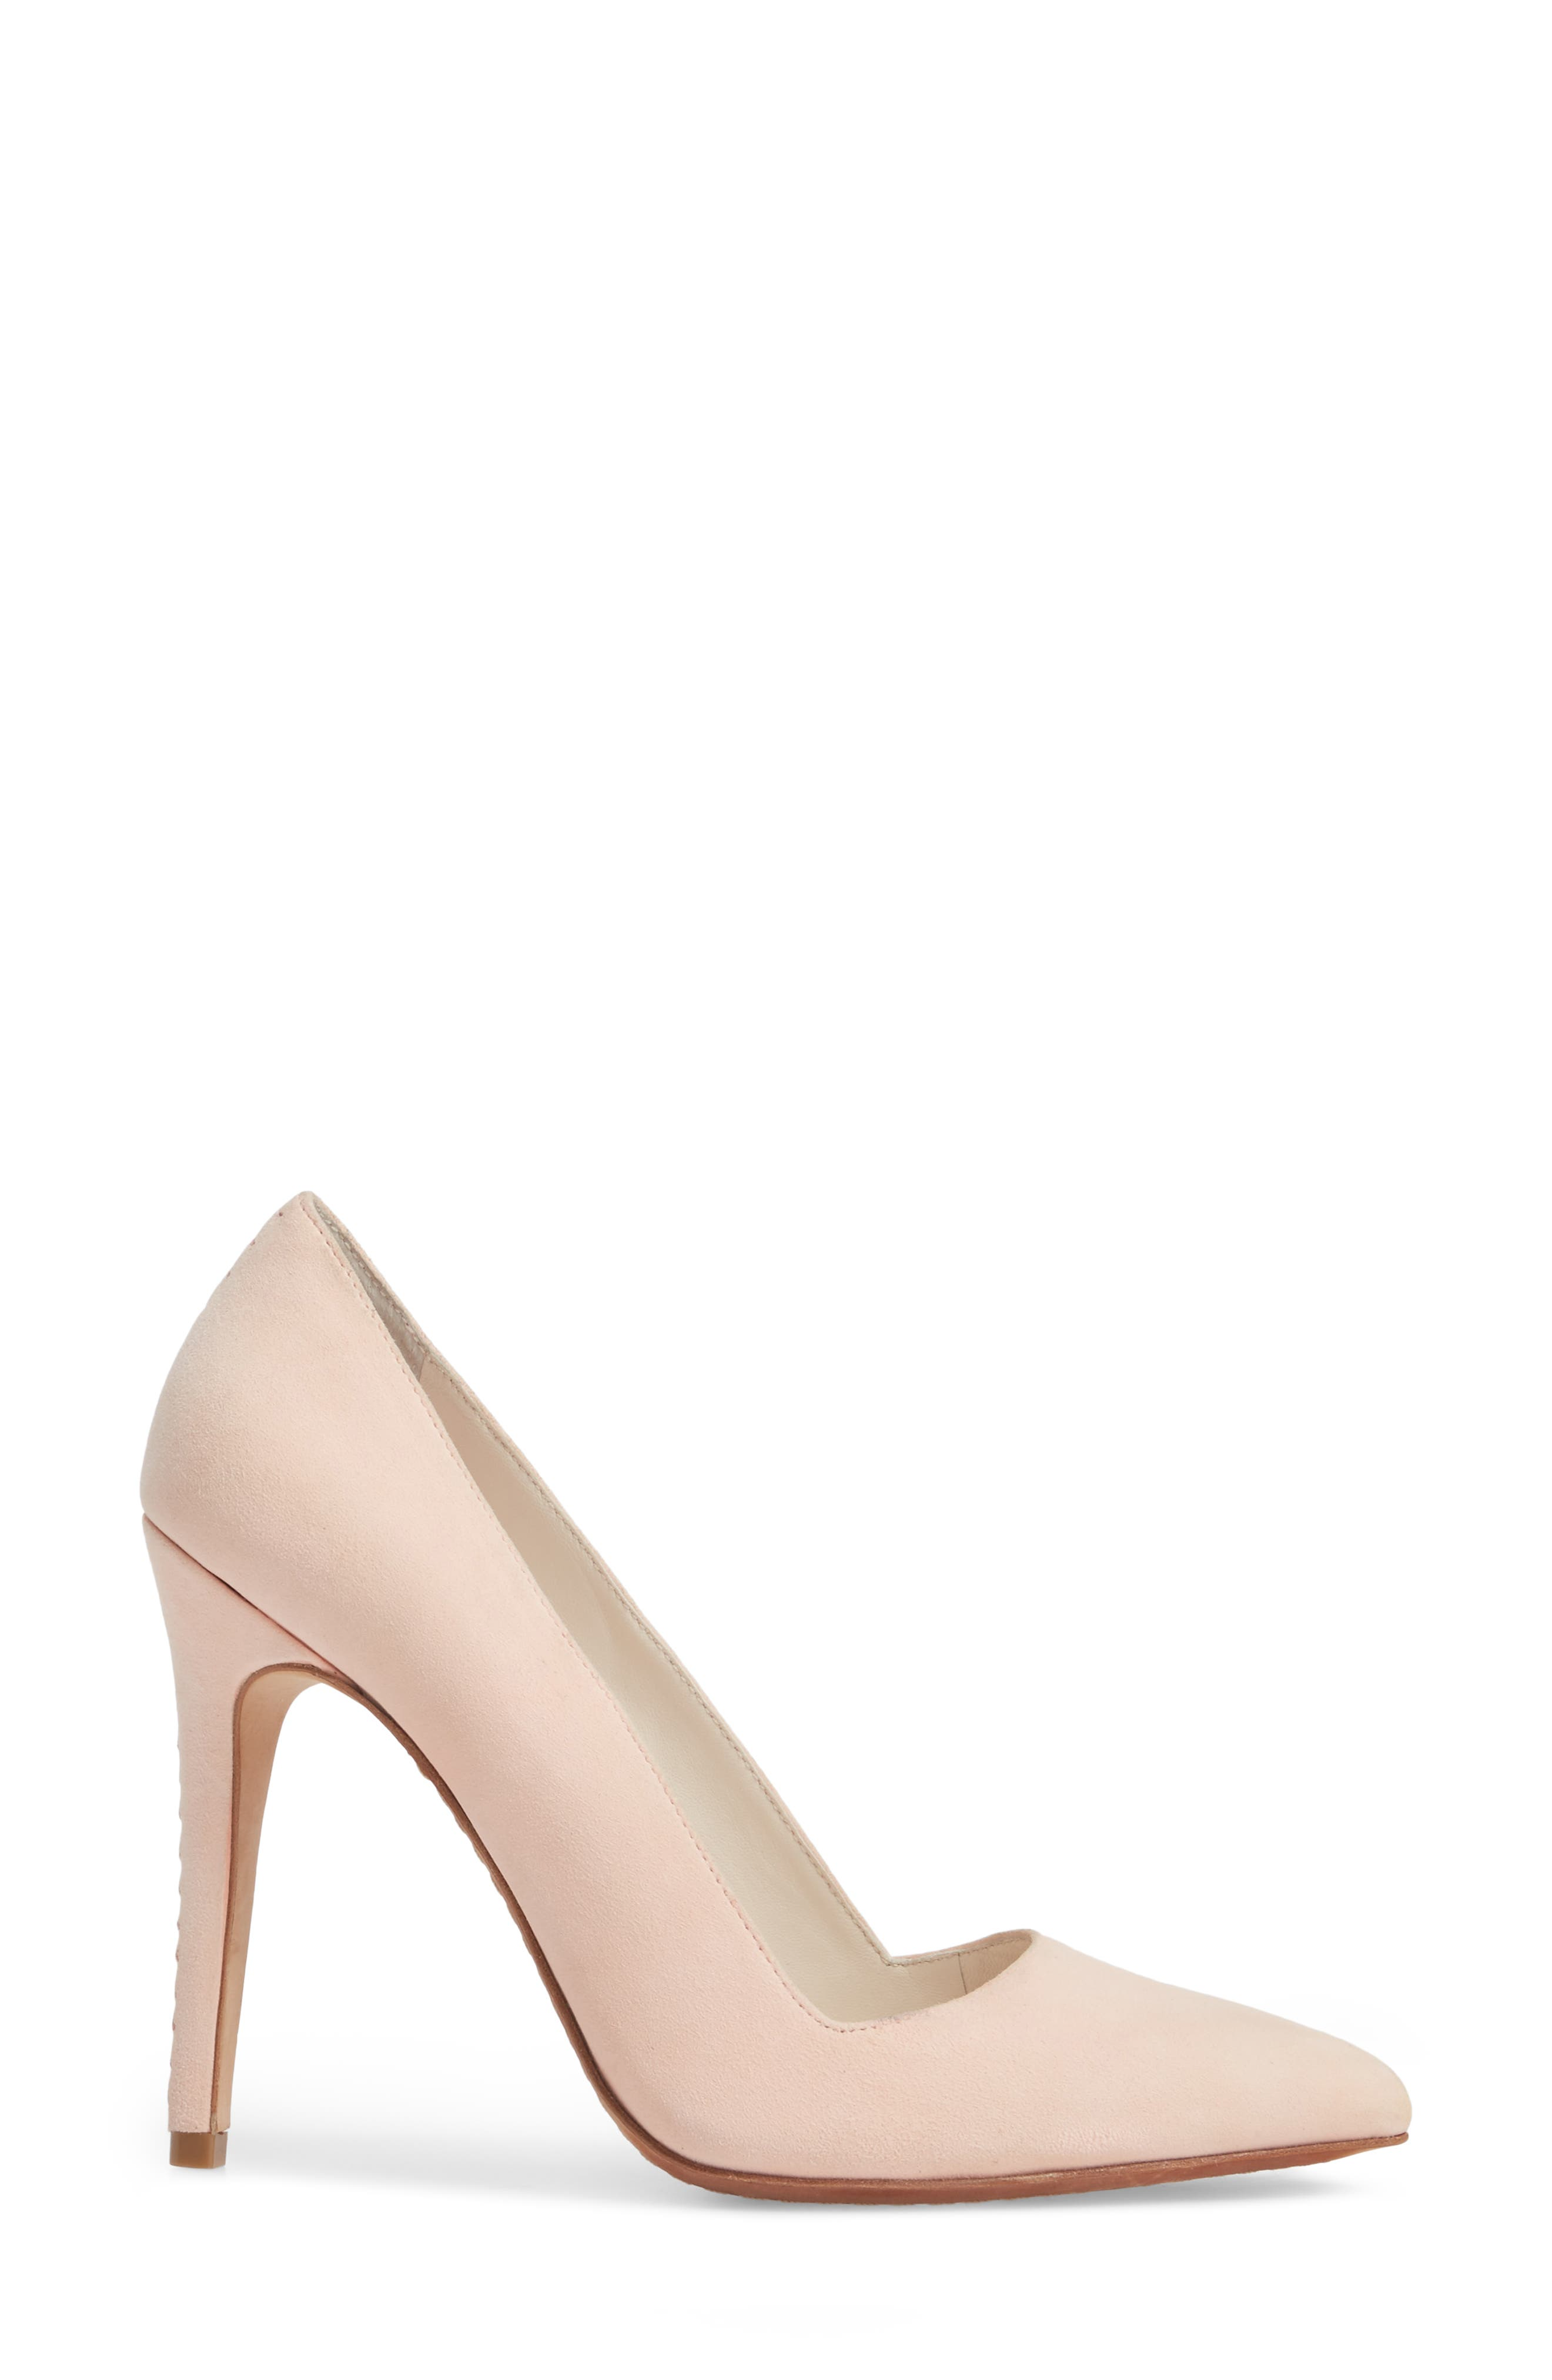 Dina 95 Whipstitch Pointy Toe Pump,                             Alternate thumbnail 3, color,                             Perfect Pink Suede